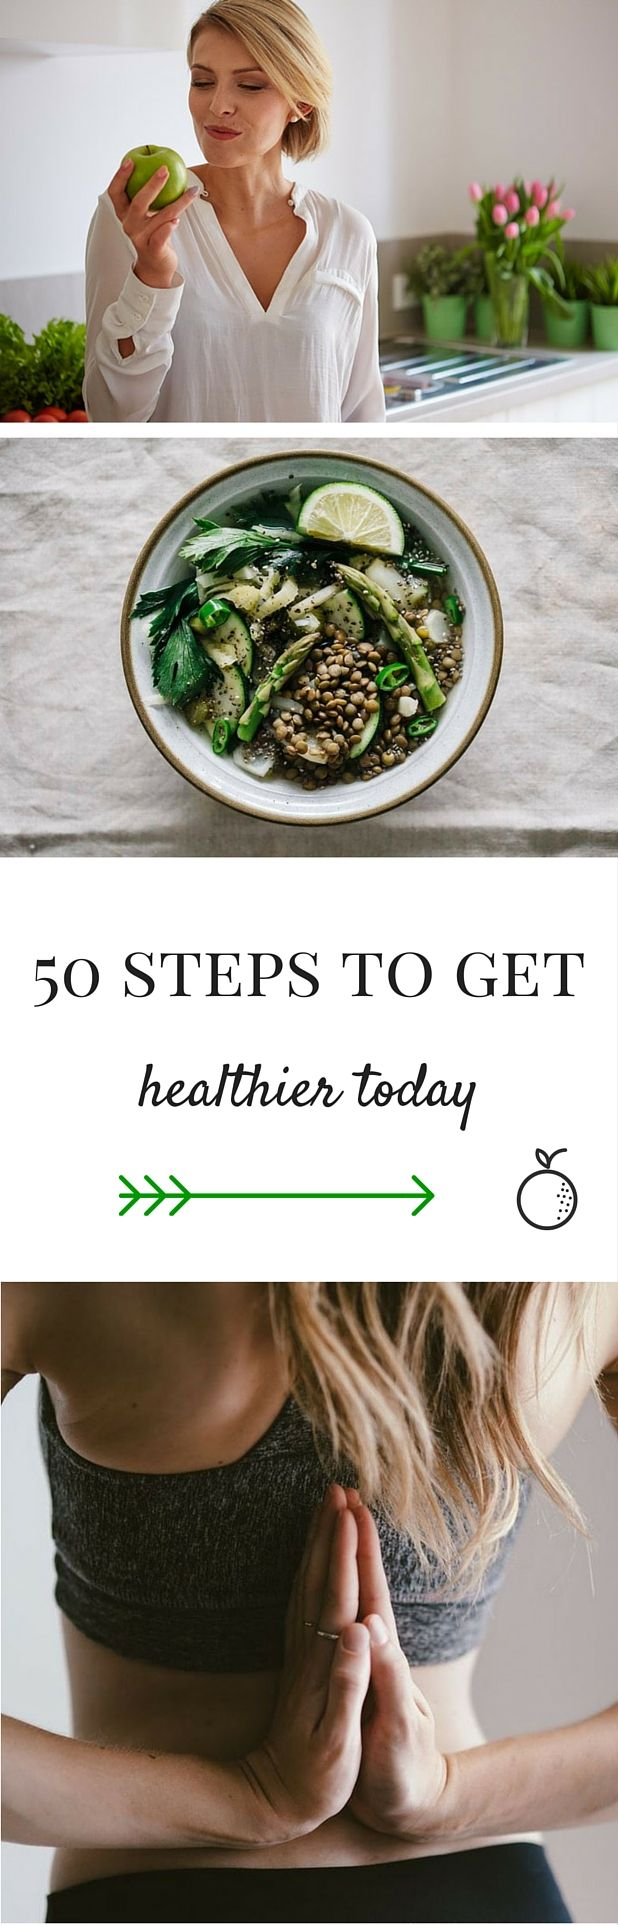 #health doesn't have to be complicated! Here are 50 ideas that make you healthier instantly :) From nutrition advice to moving around and caring about your inner game.